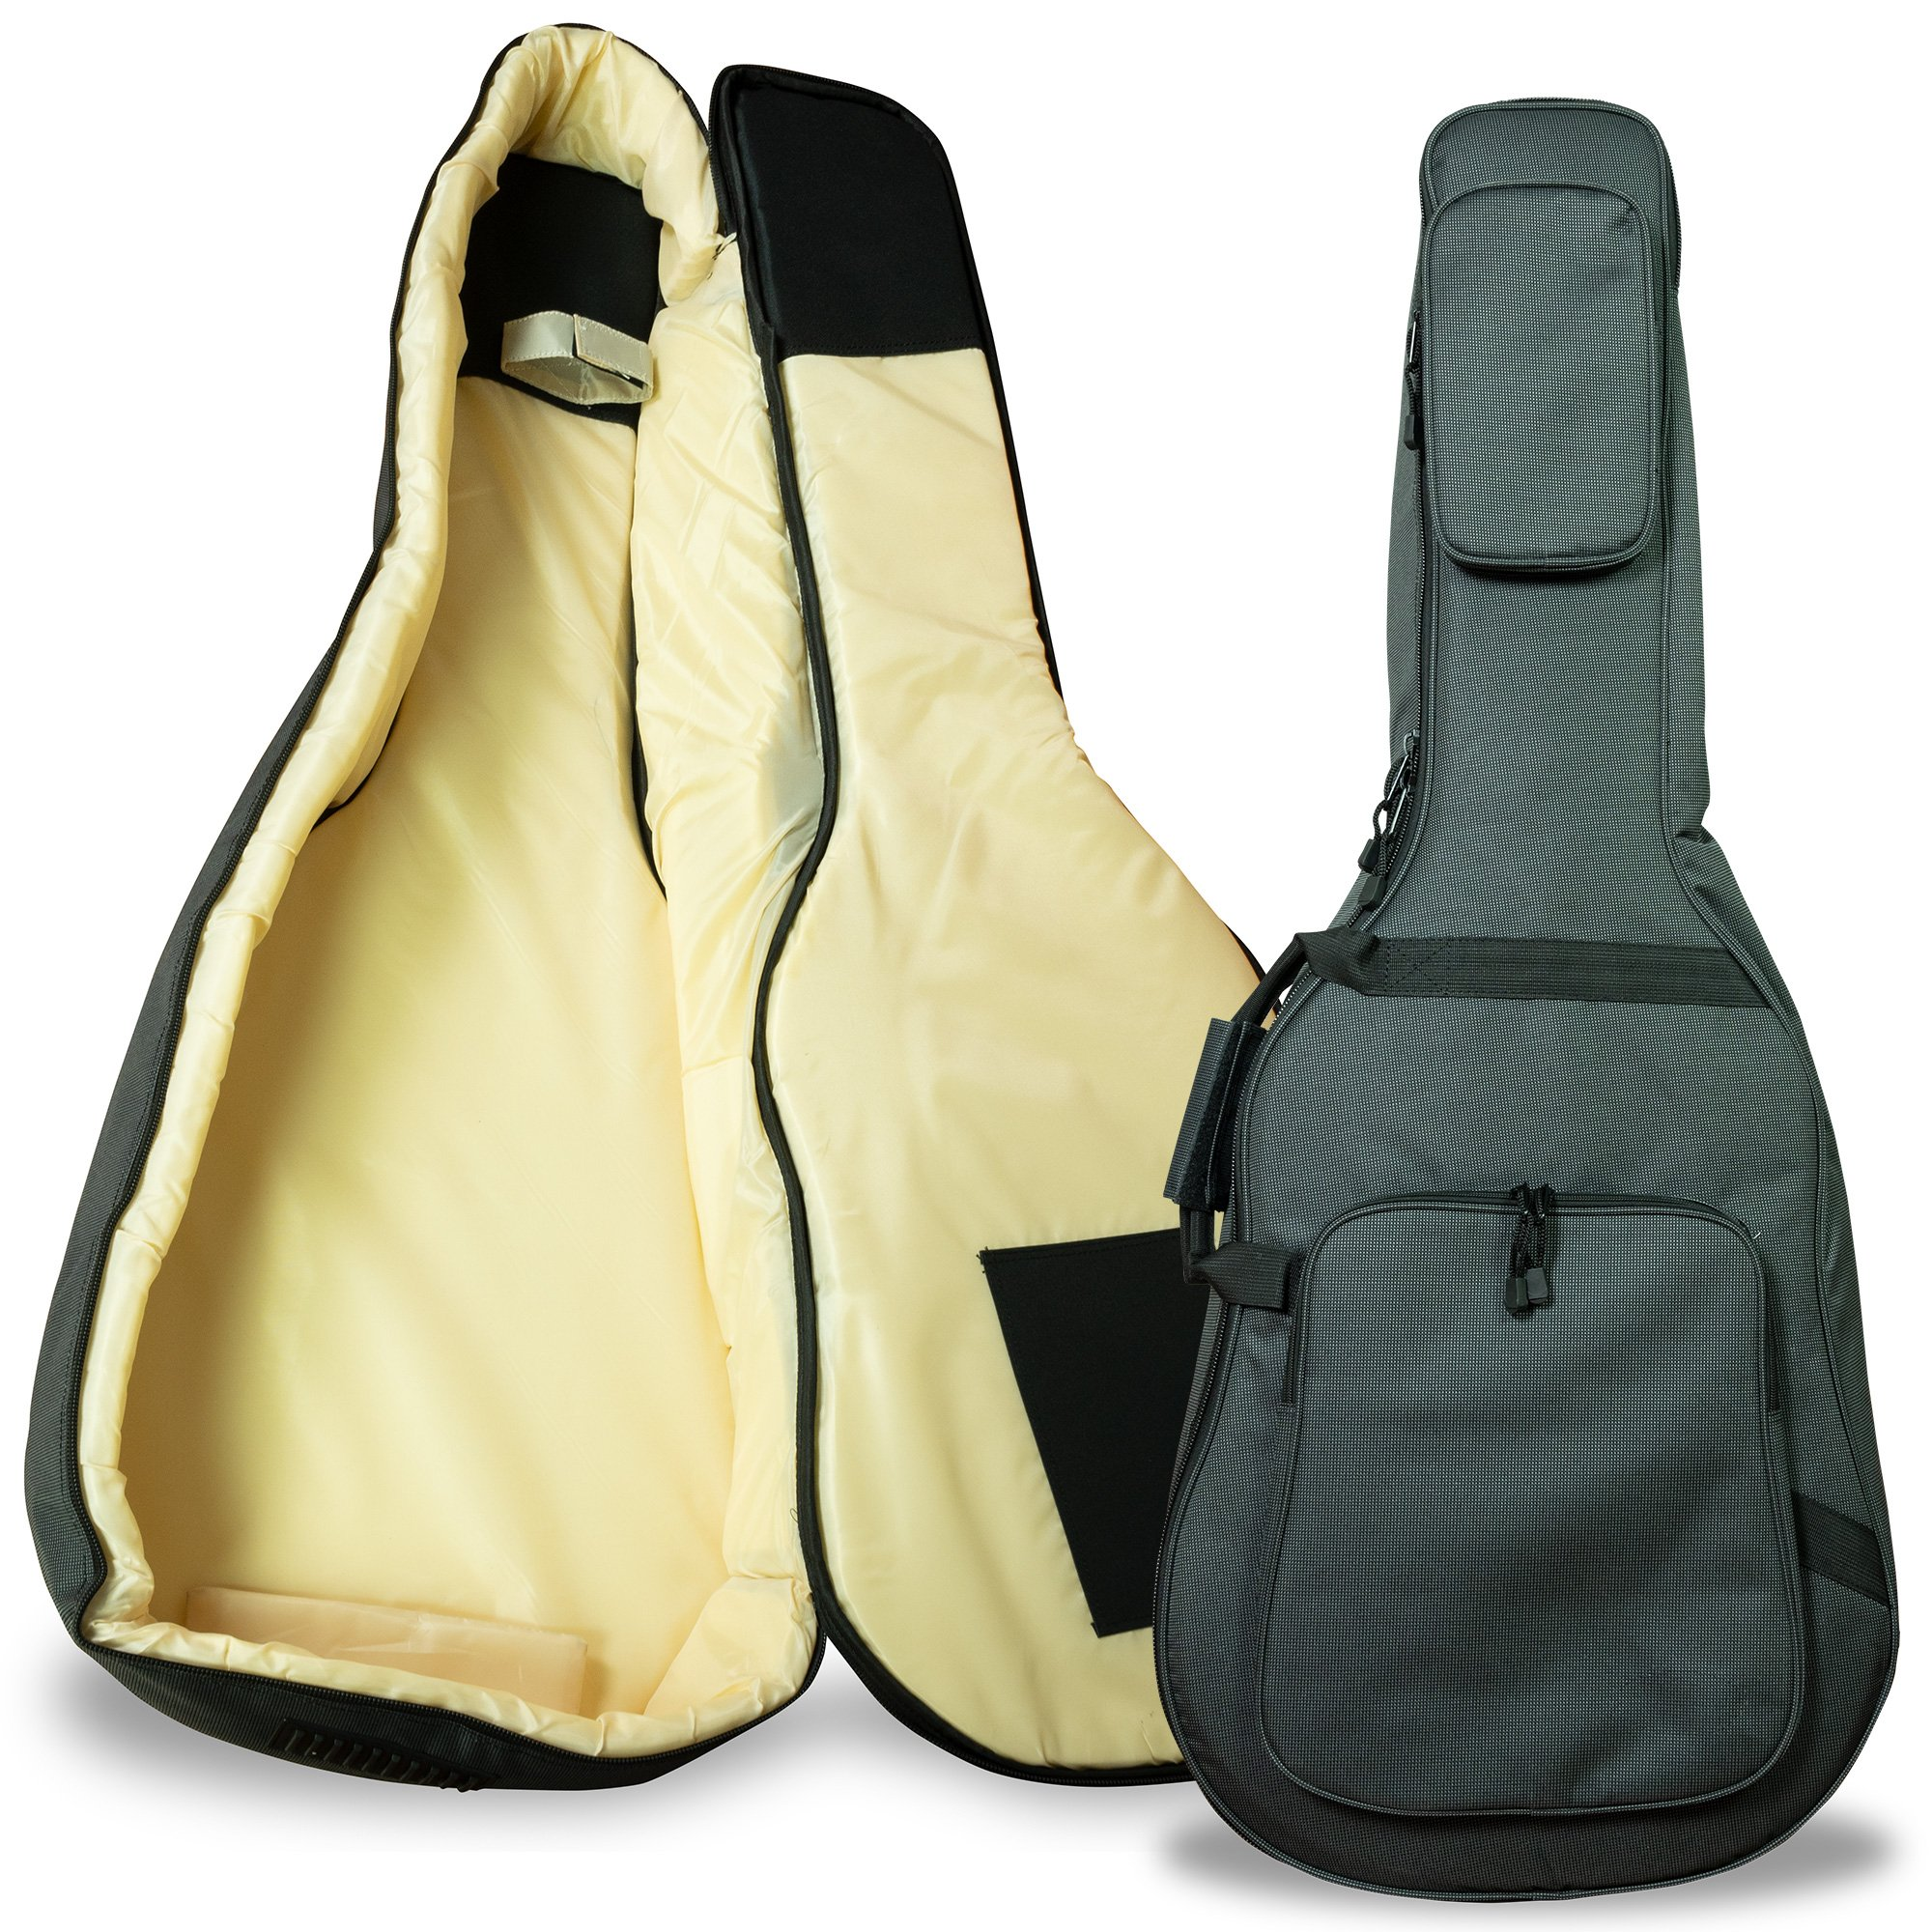 20mm-Padded Guitar Gig Bag in action